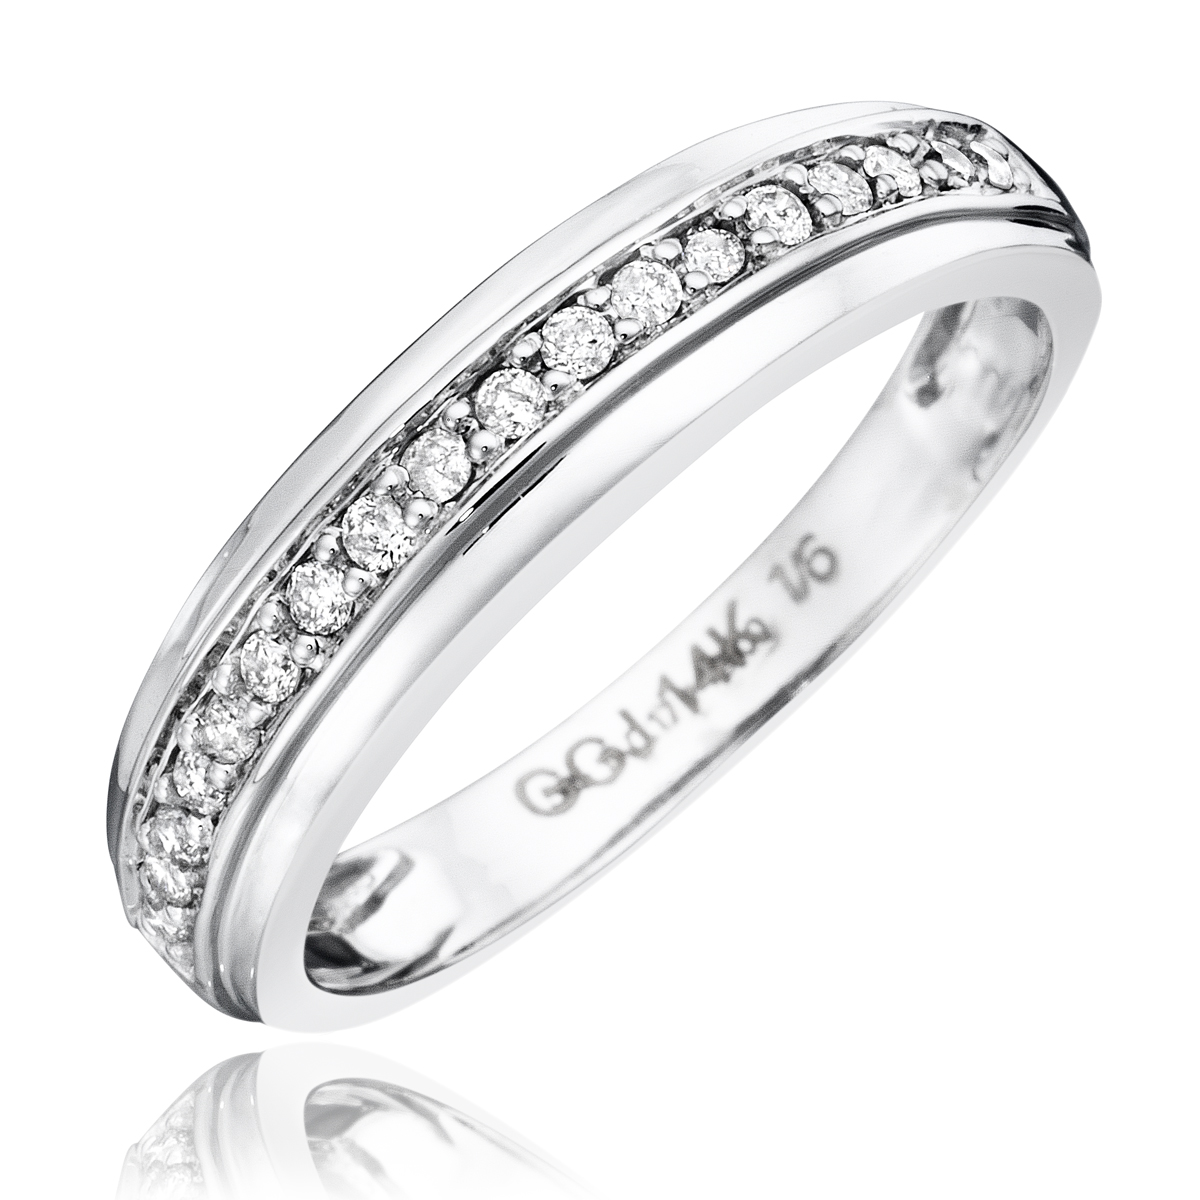 1 3 CT TW Diamond His And Hers Wedding Rings 14K White